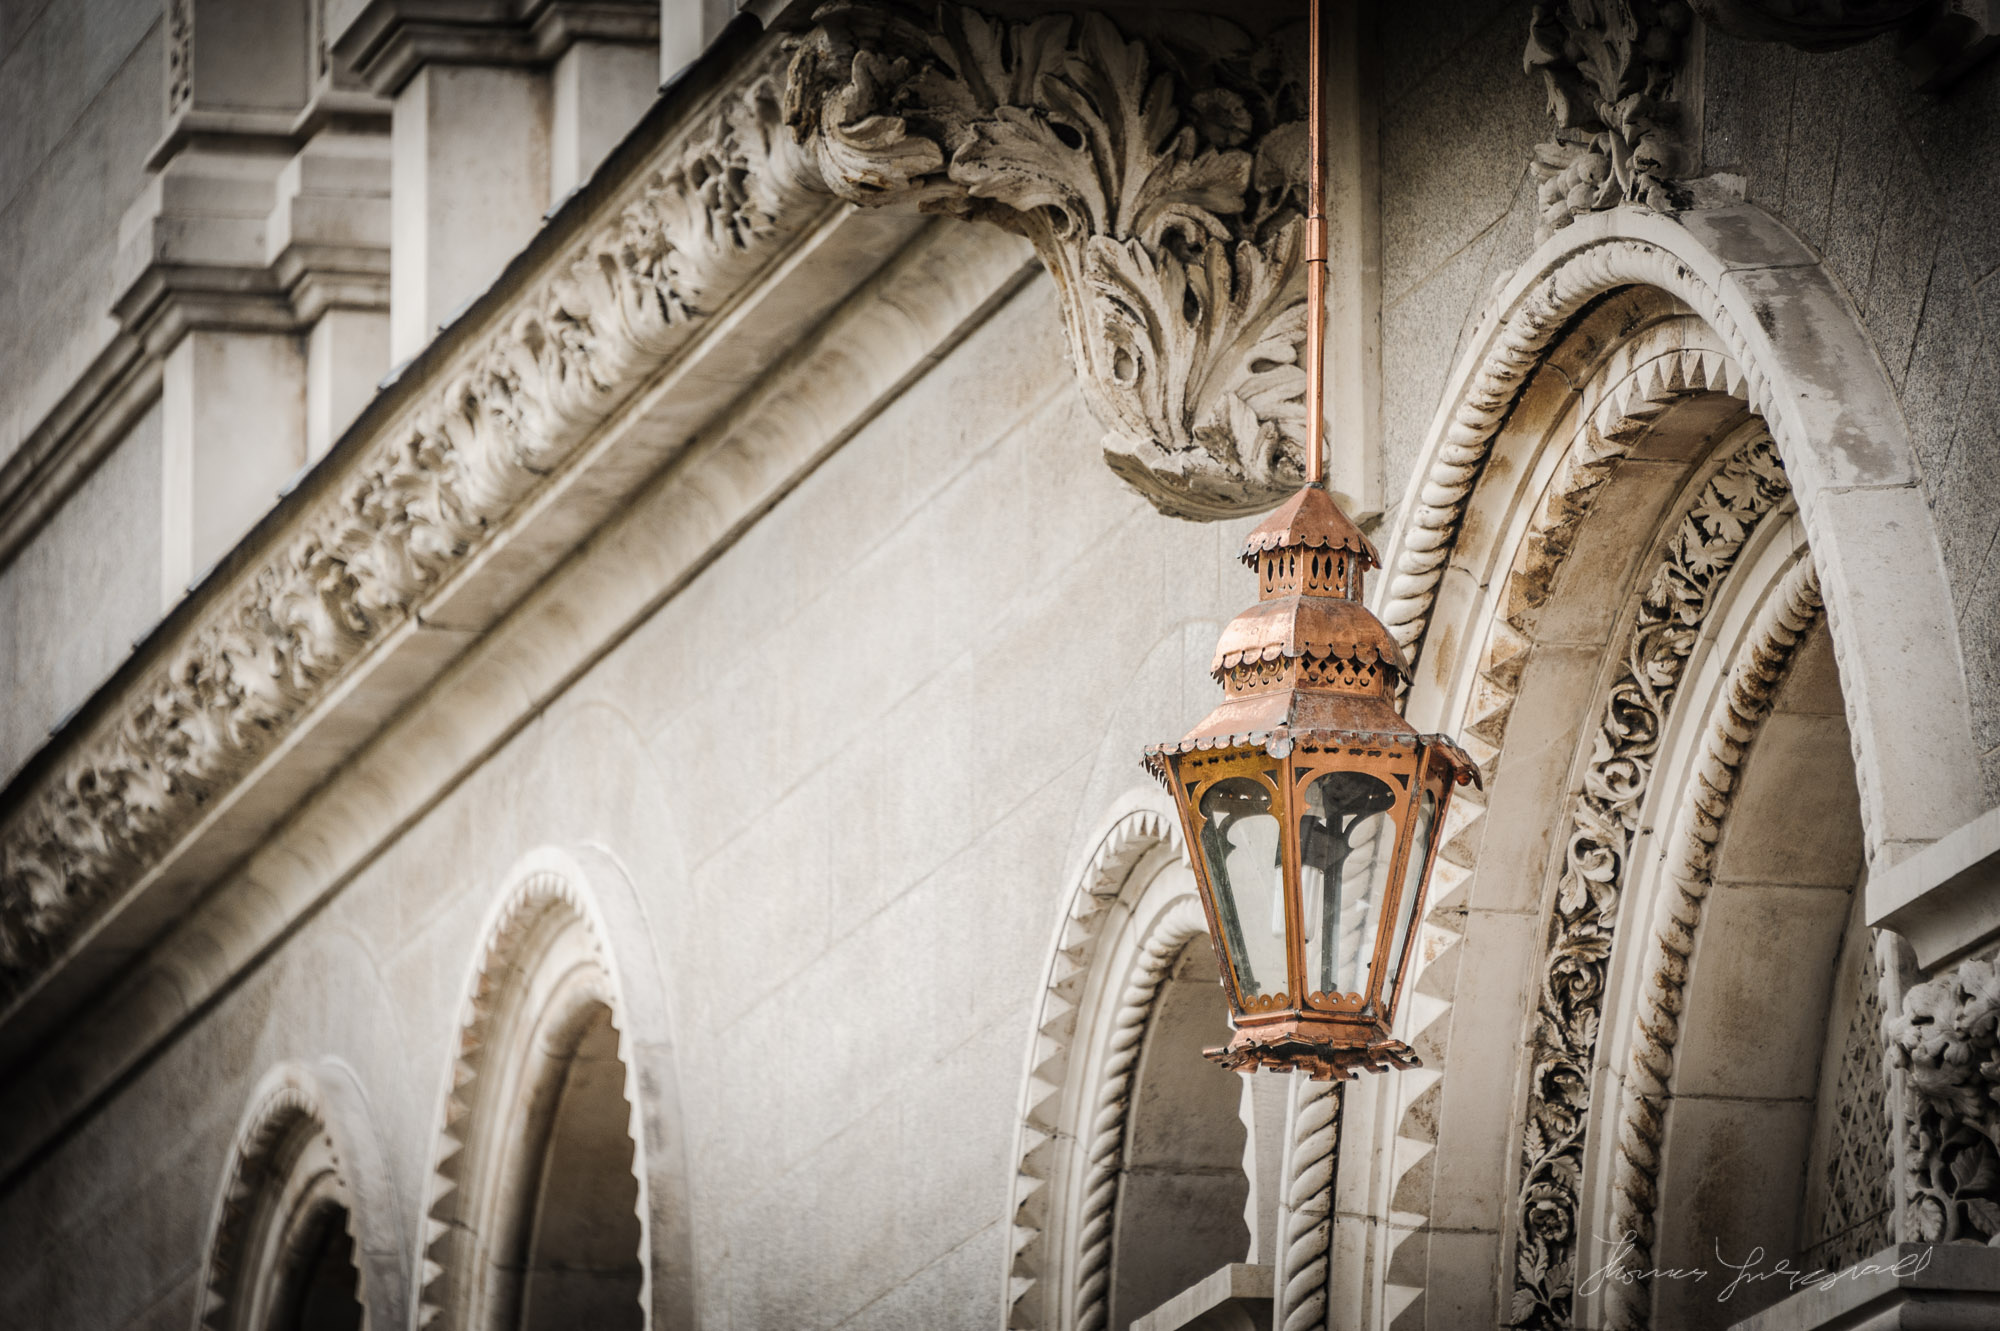 An ornate lamp hanging outside a doorway in Trinity College, Dublin.